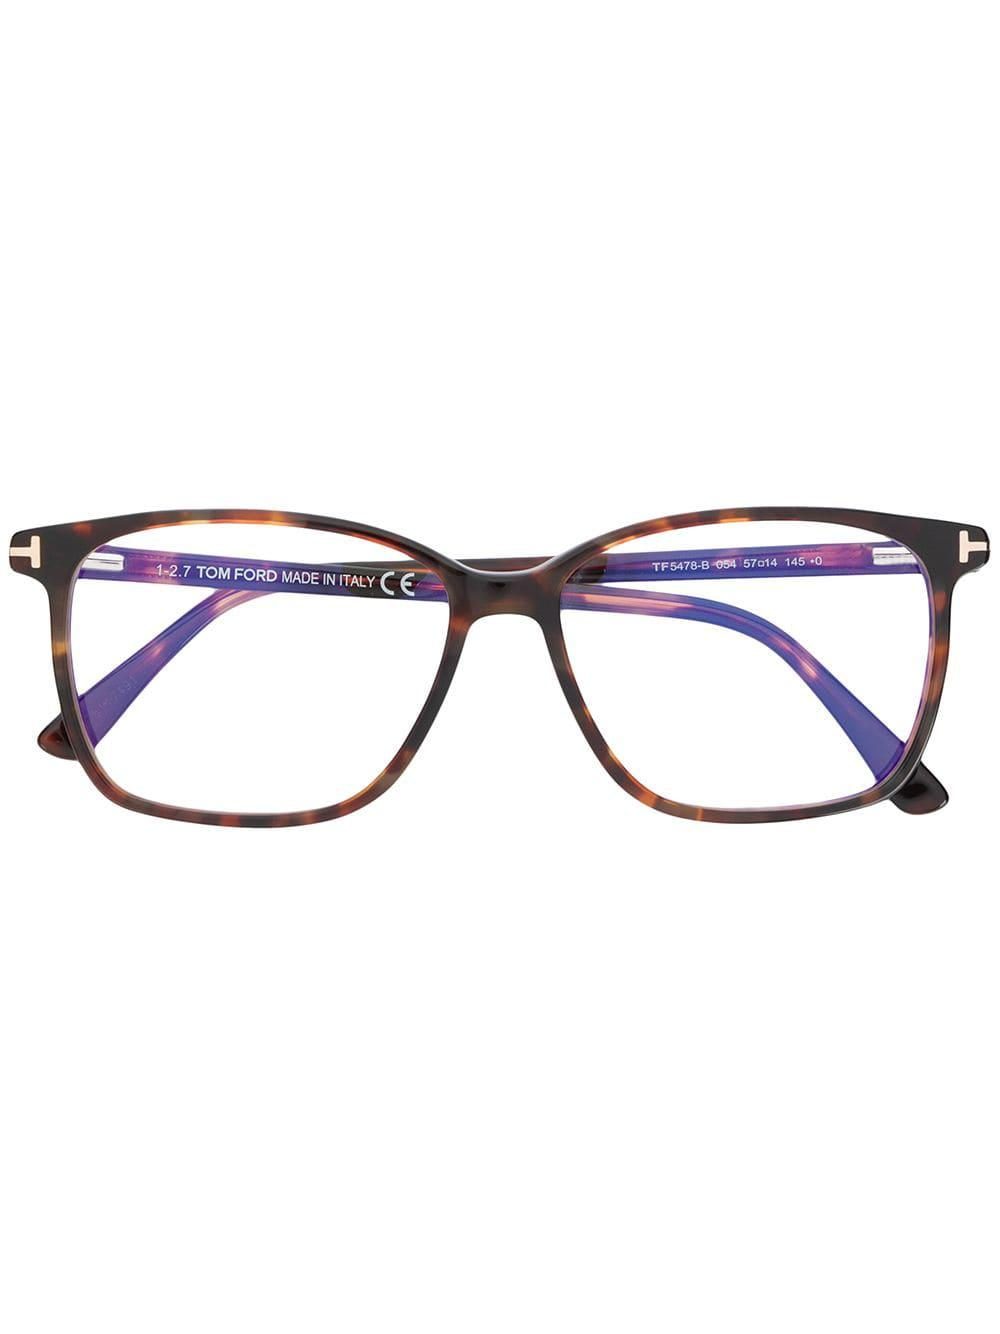 bd2e2a6eca48 Tom Ford Square Shaped Glasses in Brown for Men - Lyst